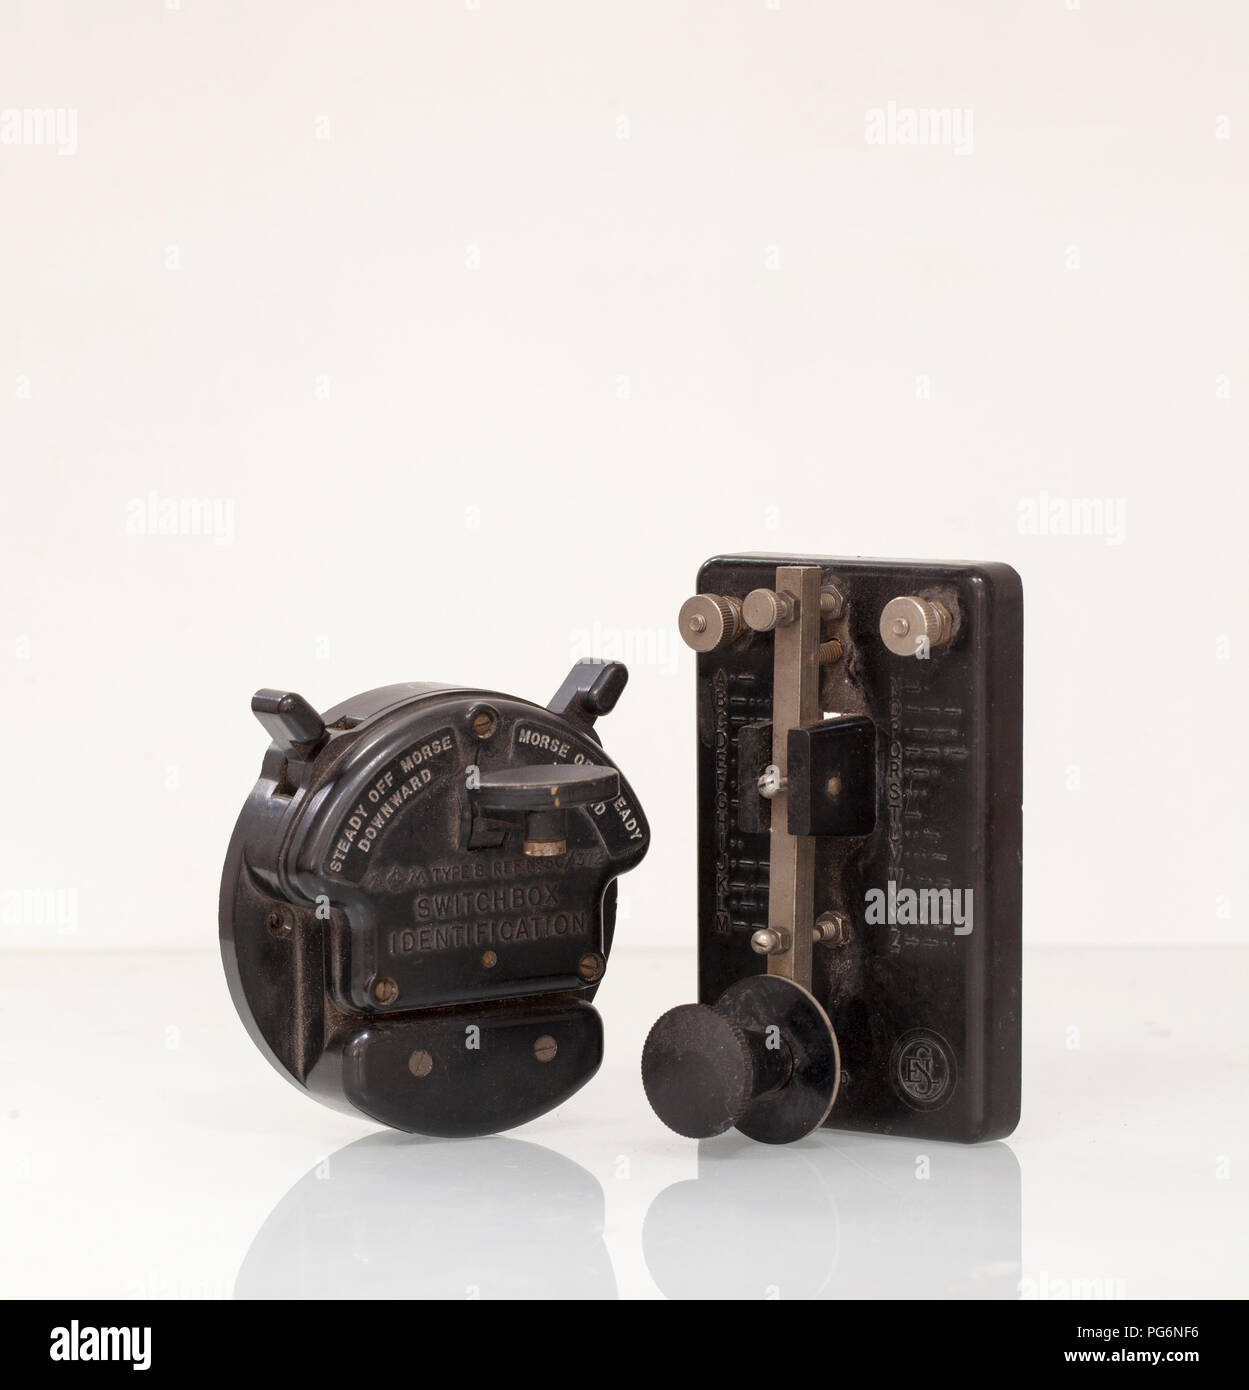 Vintage Bakelite Morse Code Keys Stock Photo: 216507514 - Alamy